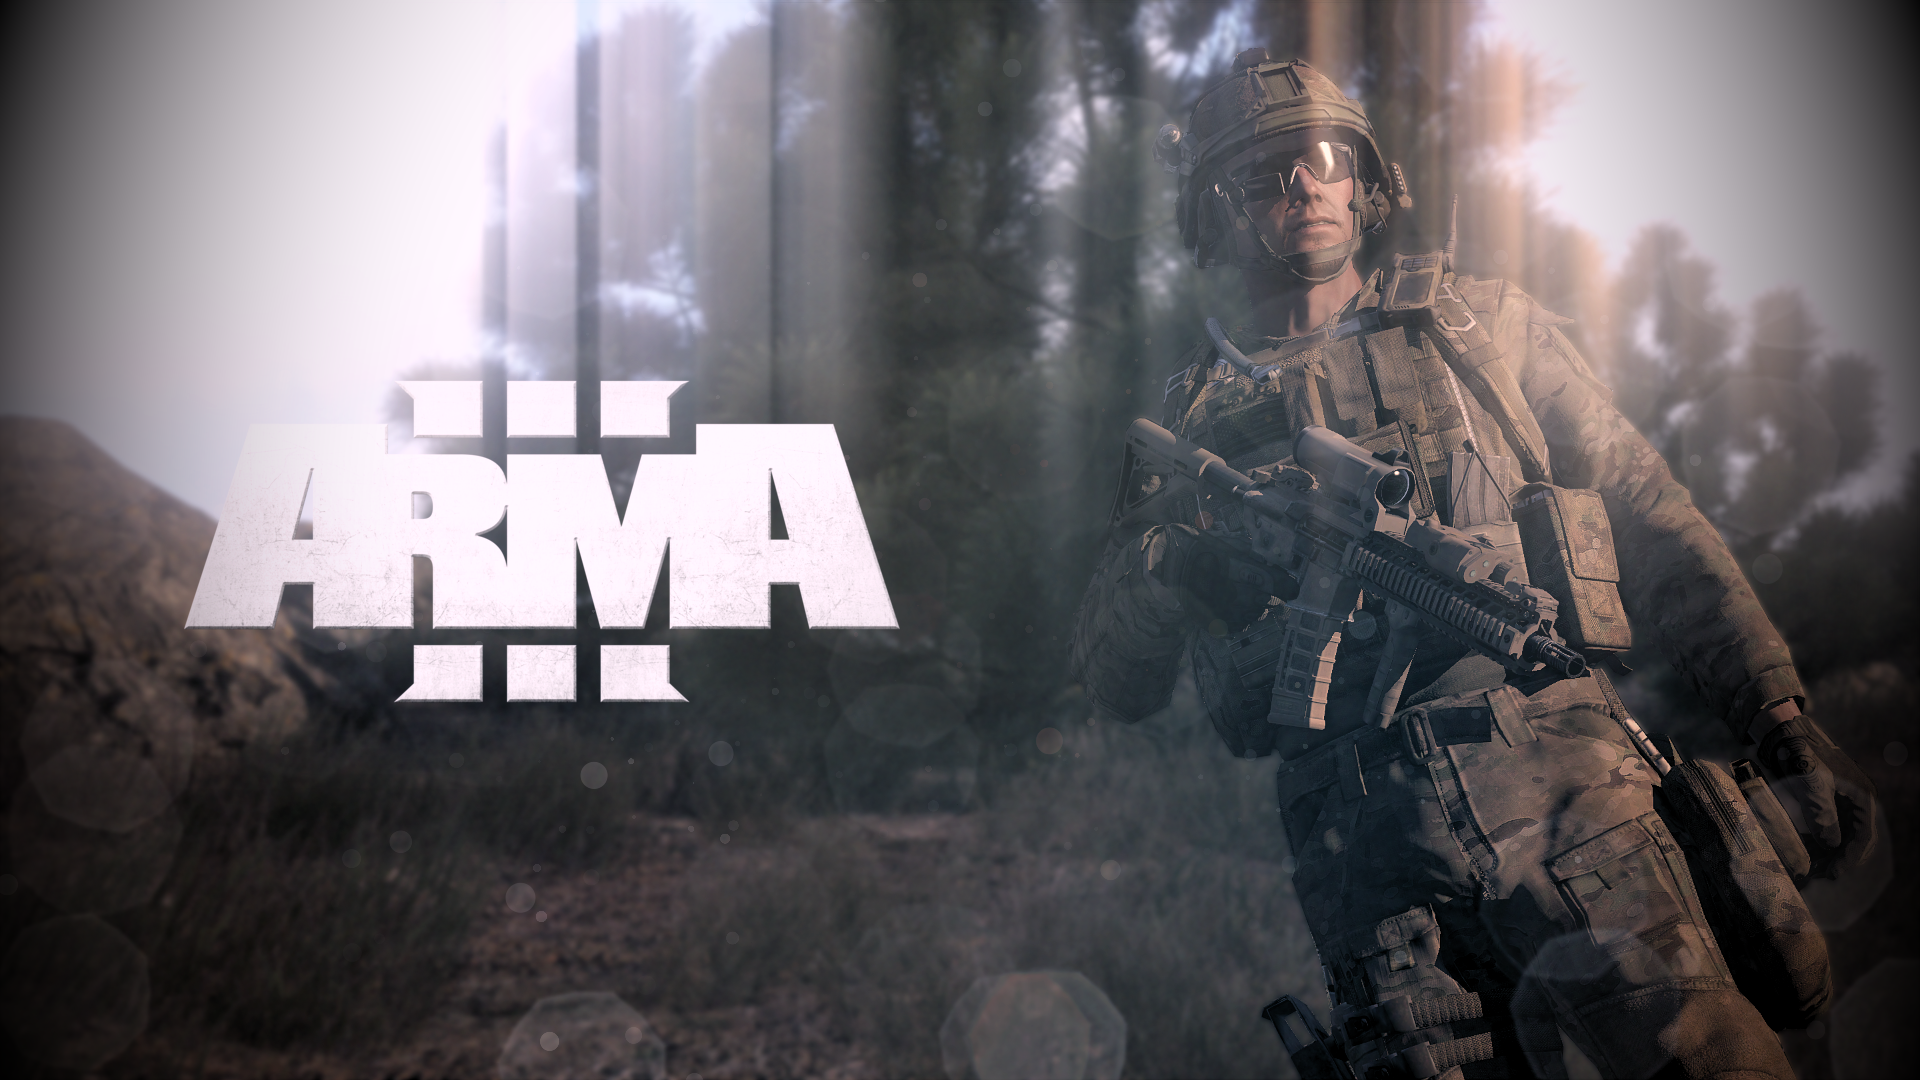 full hd 1080p arma 3 wallpapers hd, desktop backgrounds 1920x1080